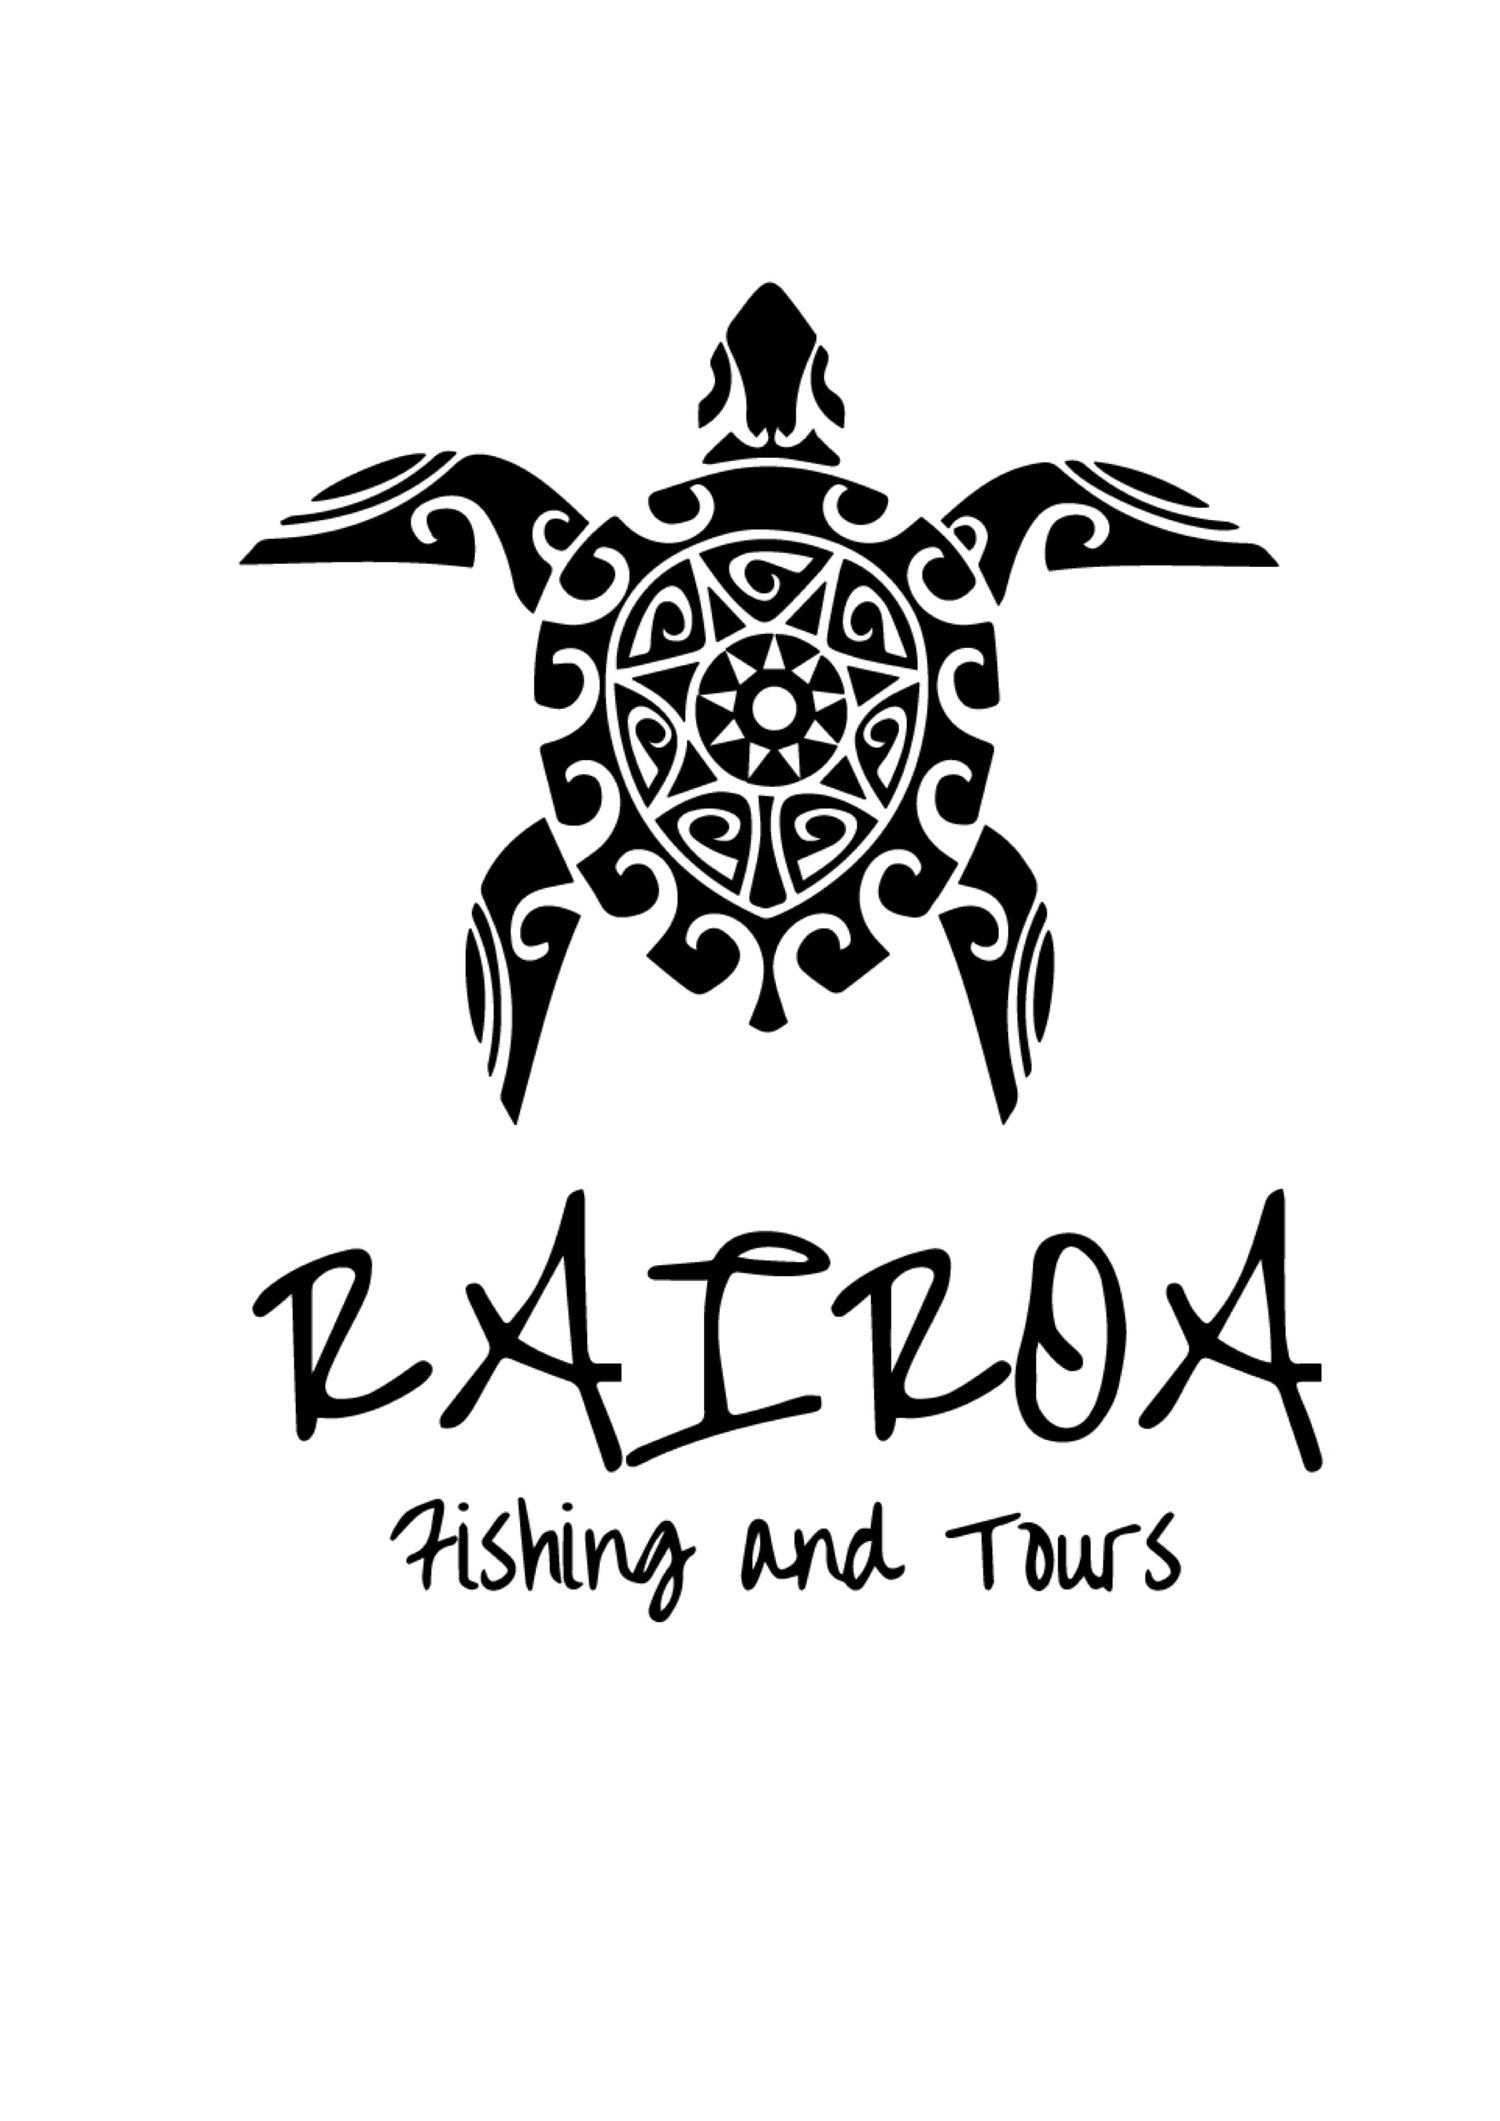 Rairoa Fishing and Tours